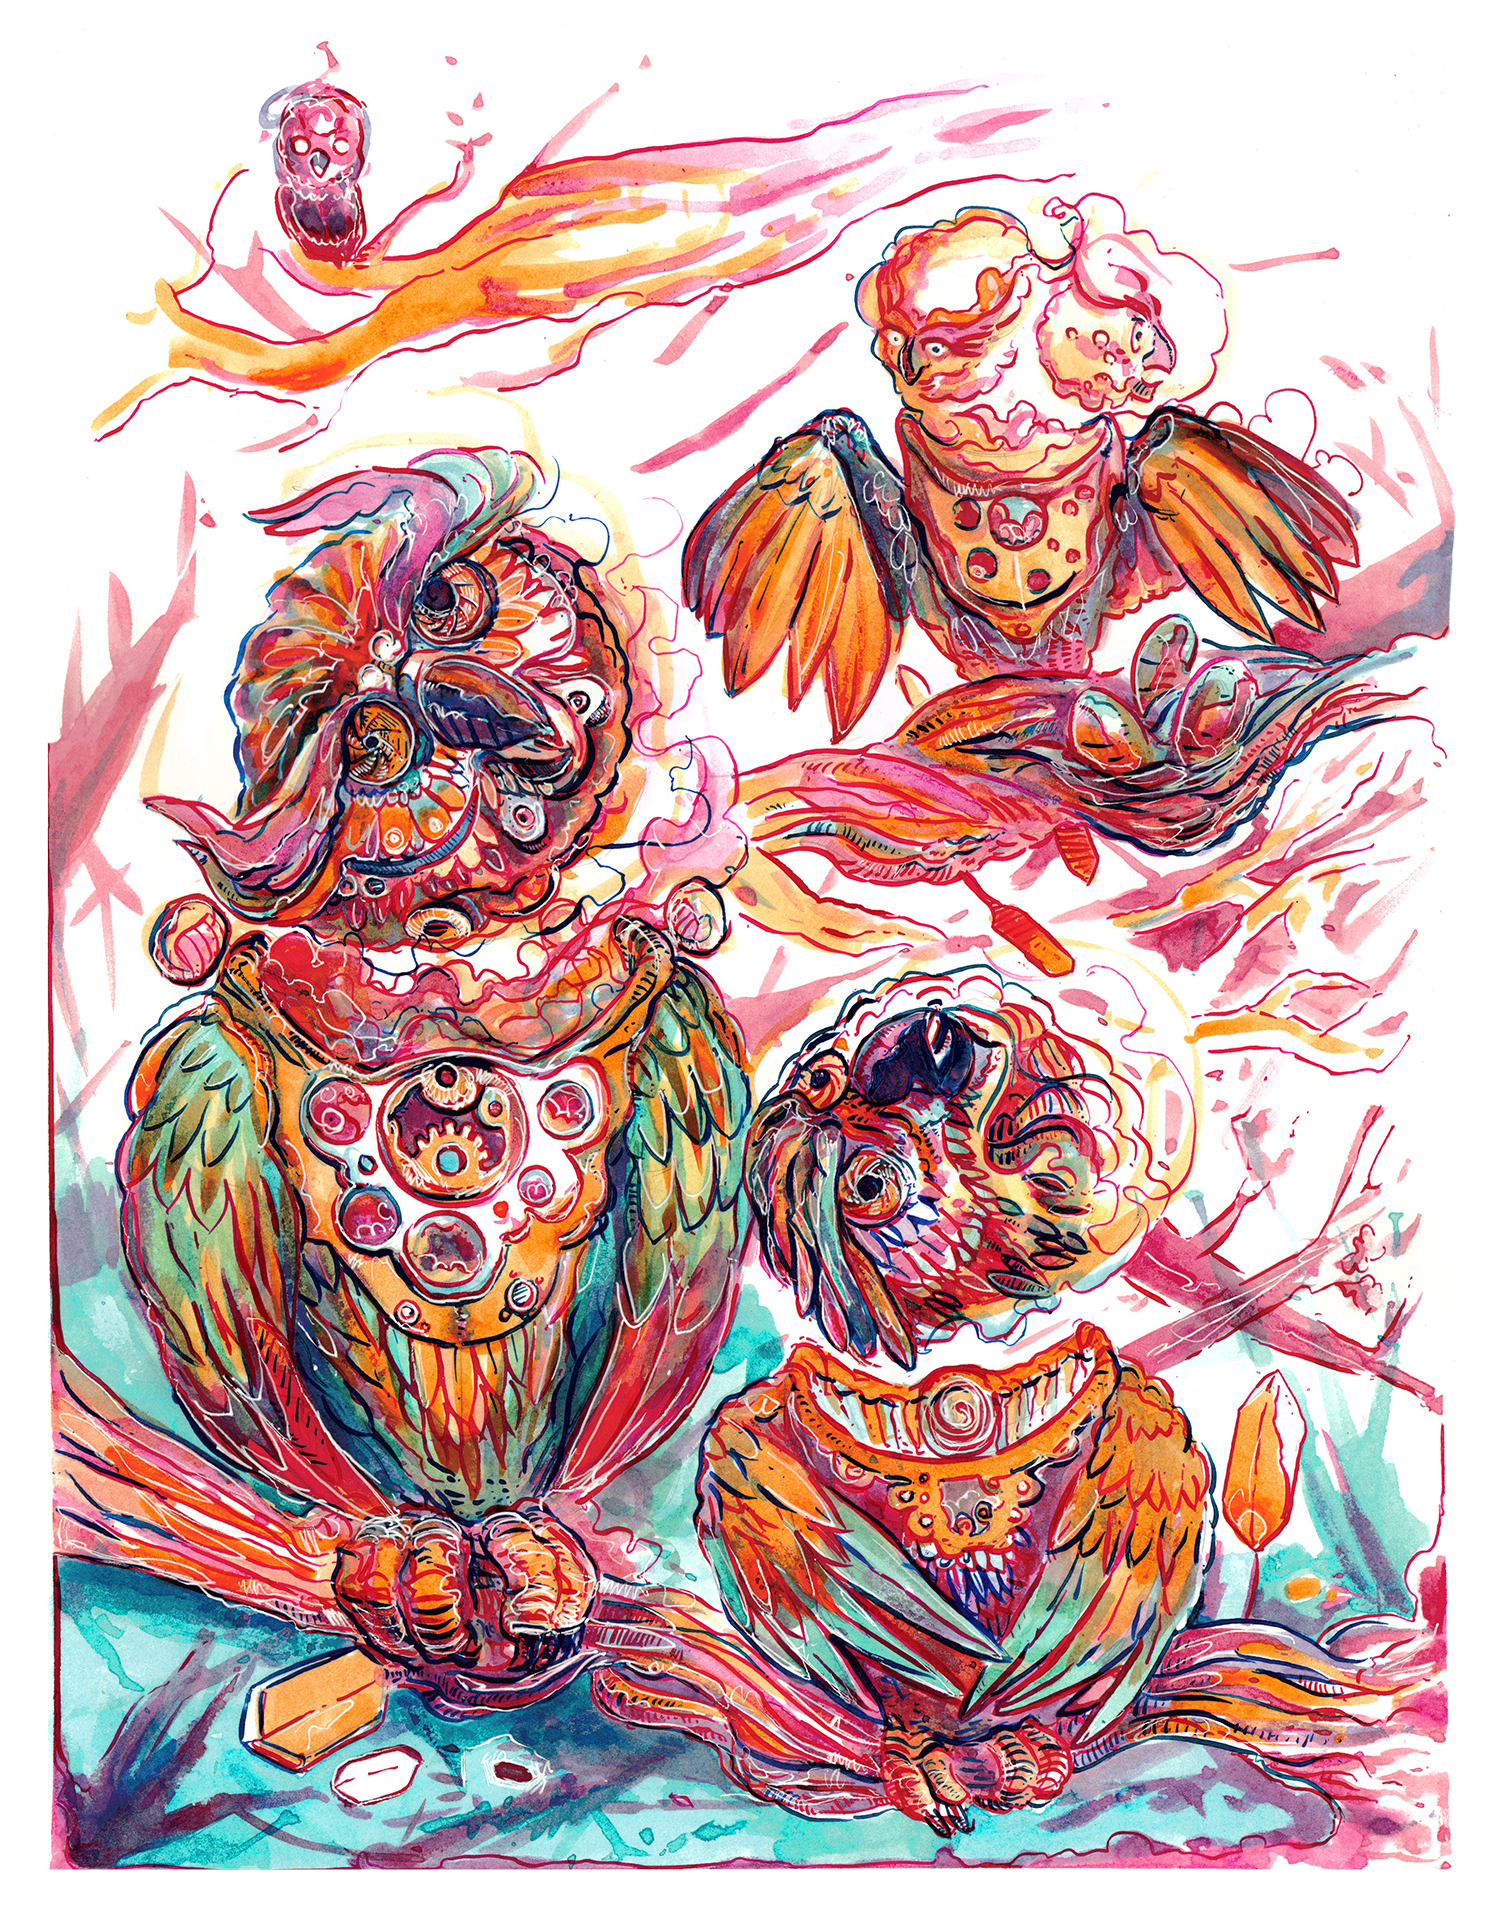 jsam_frankel_owls of the fourth_austin_art.png